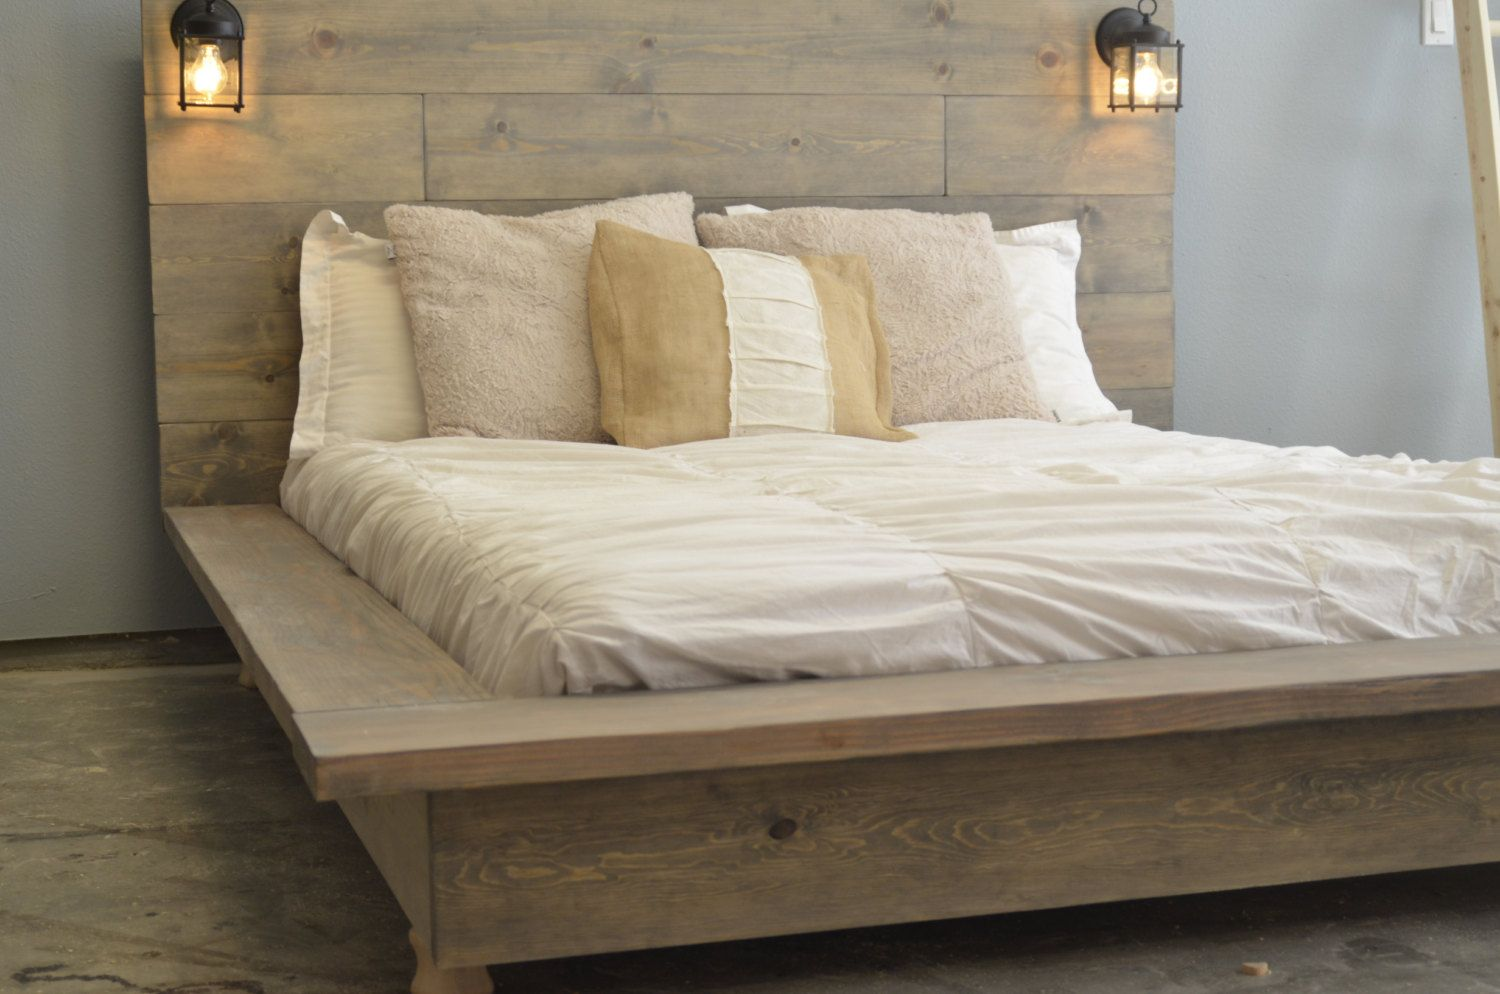 floating wood platform bed frame with lighted headboard quilmes anything and everything wood. Black Bedroom Furniture Sets. Home Design Ideas